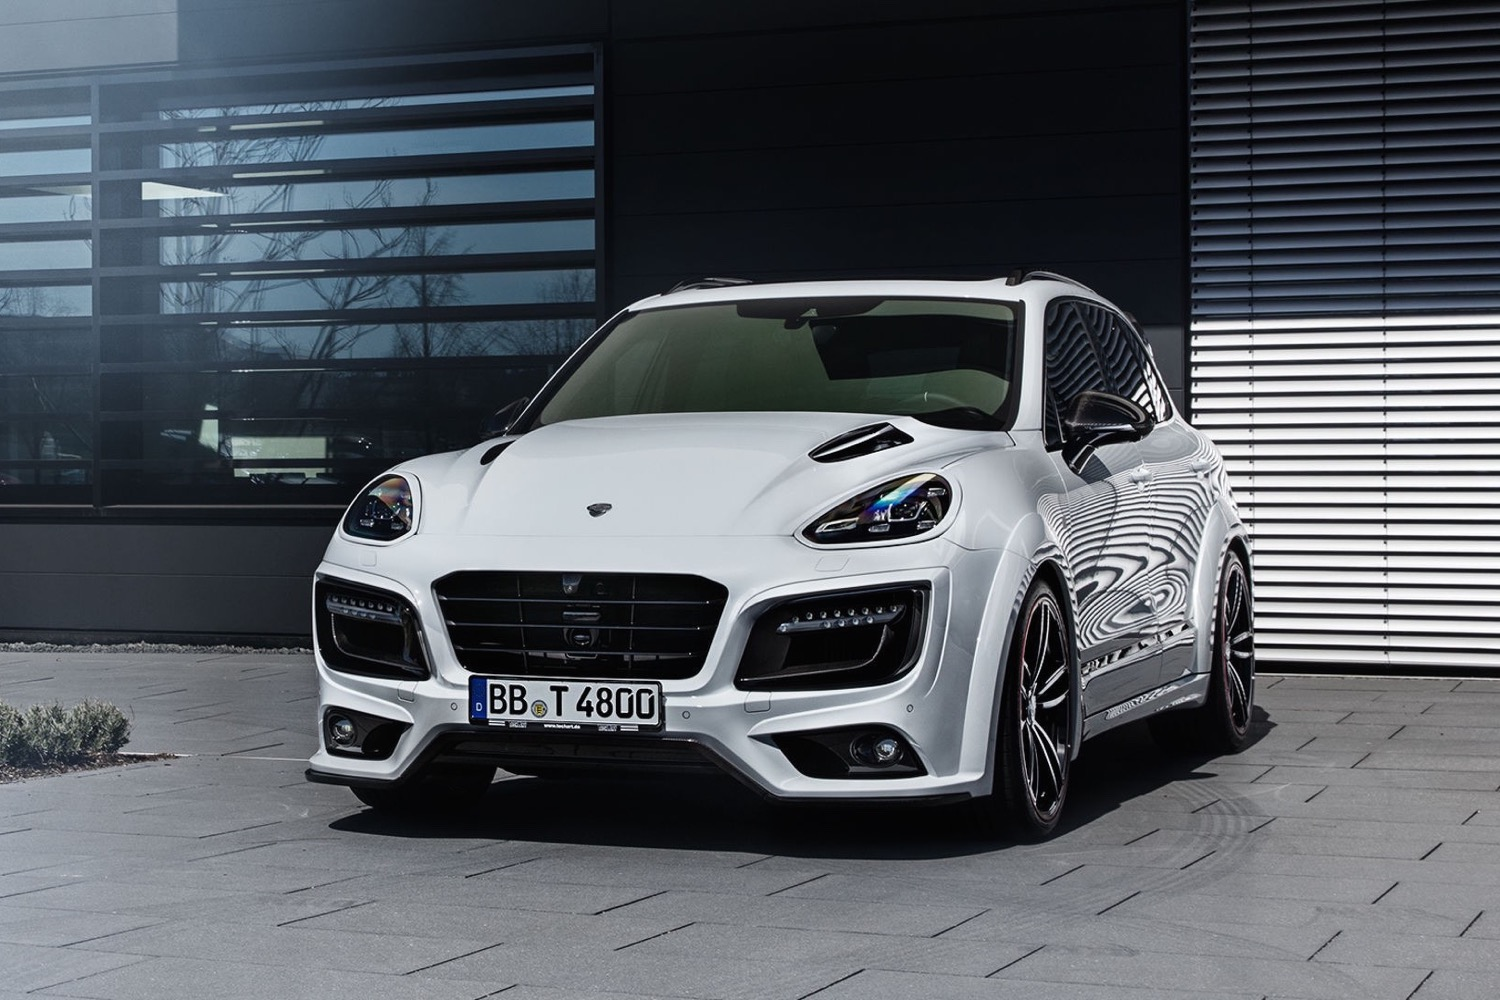 Cayenne Turbo S : so what if it s an suv with 720 hp this tuned cayenne turbo s is no slouch ~ Medecine-chirurgie-esthetiques.com Avis de Voitures